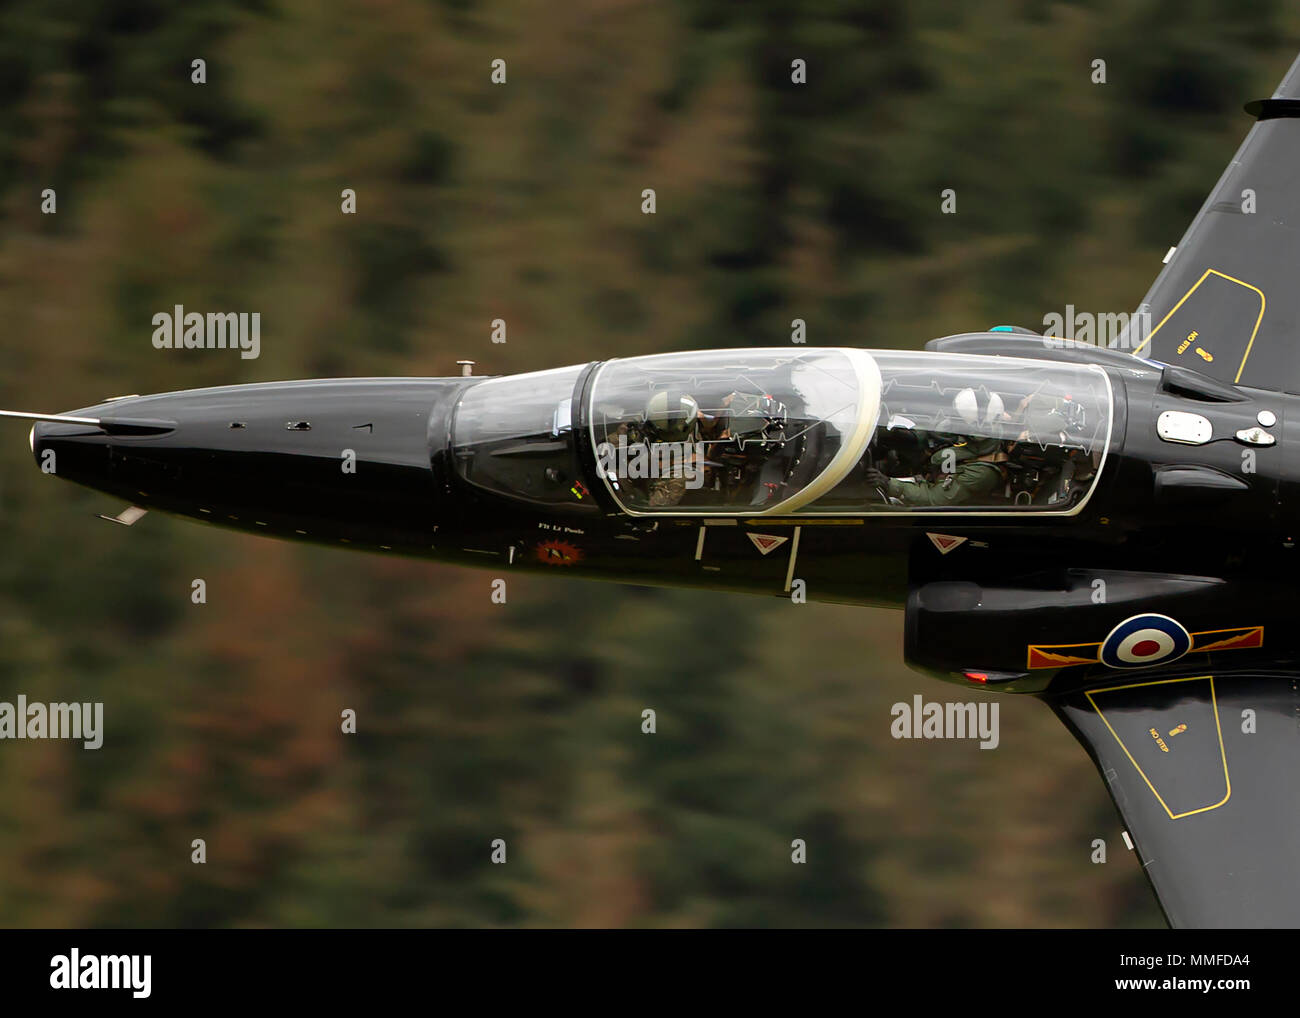 RAF Hawk low level - Stock Image